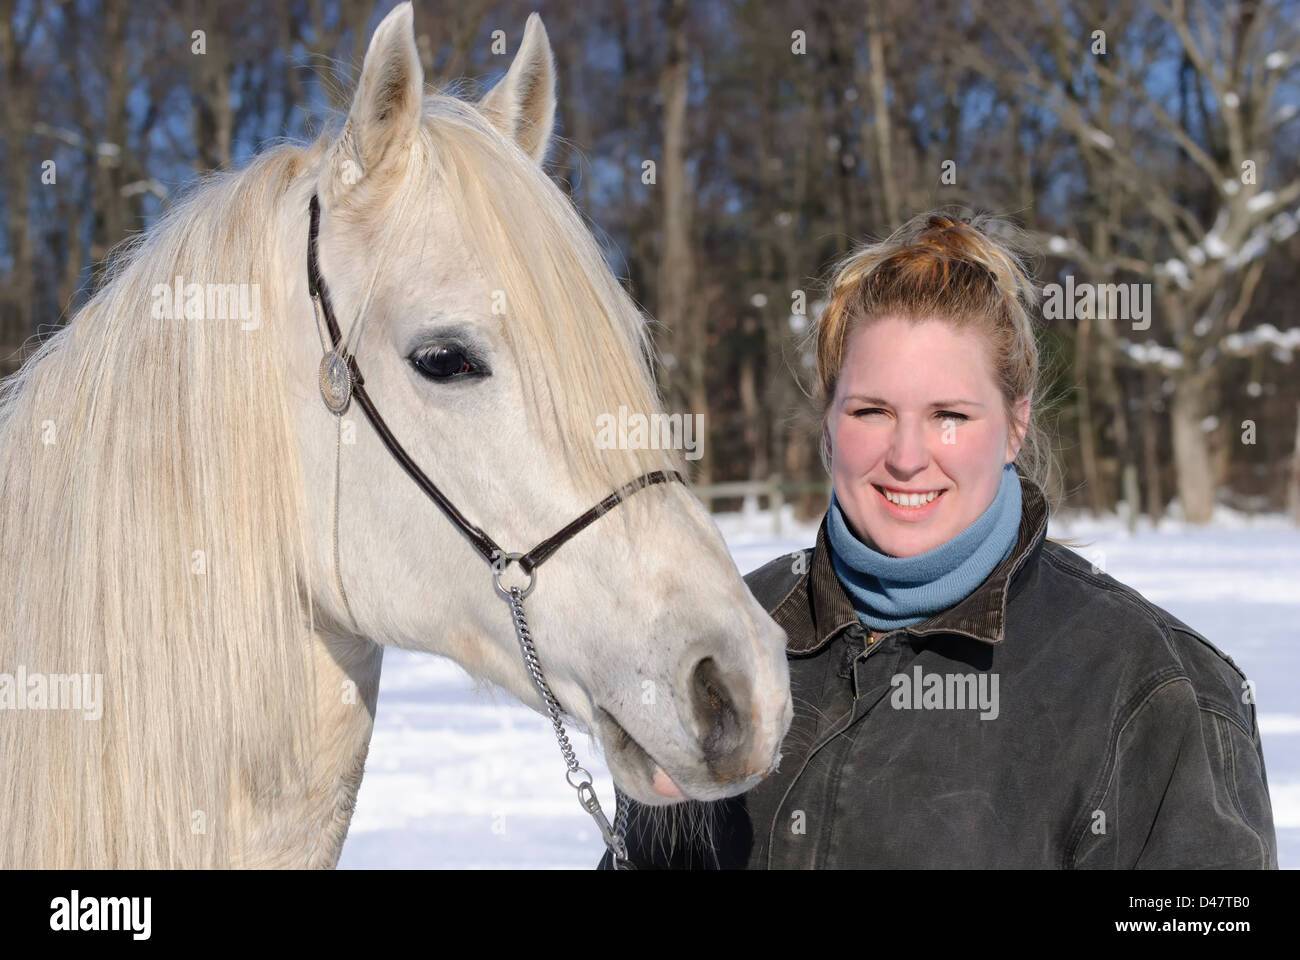 Woman and her white horse in outdoor winter snow portrait, a twenty-something blond and an Arabian stallion. - Stock Image